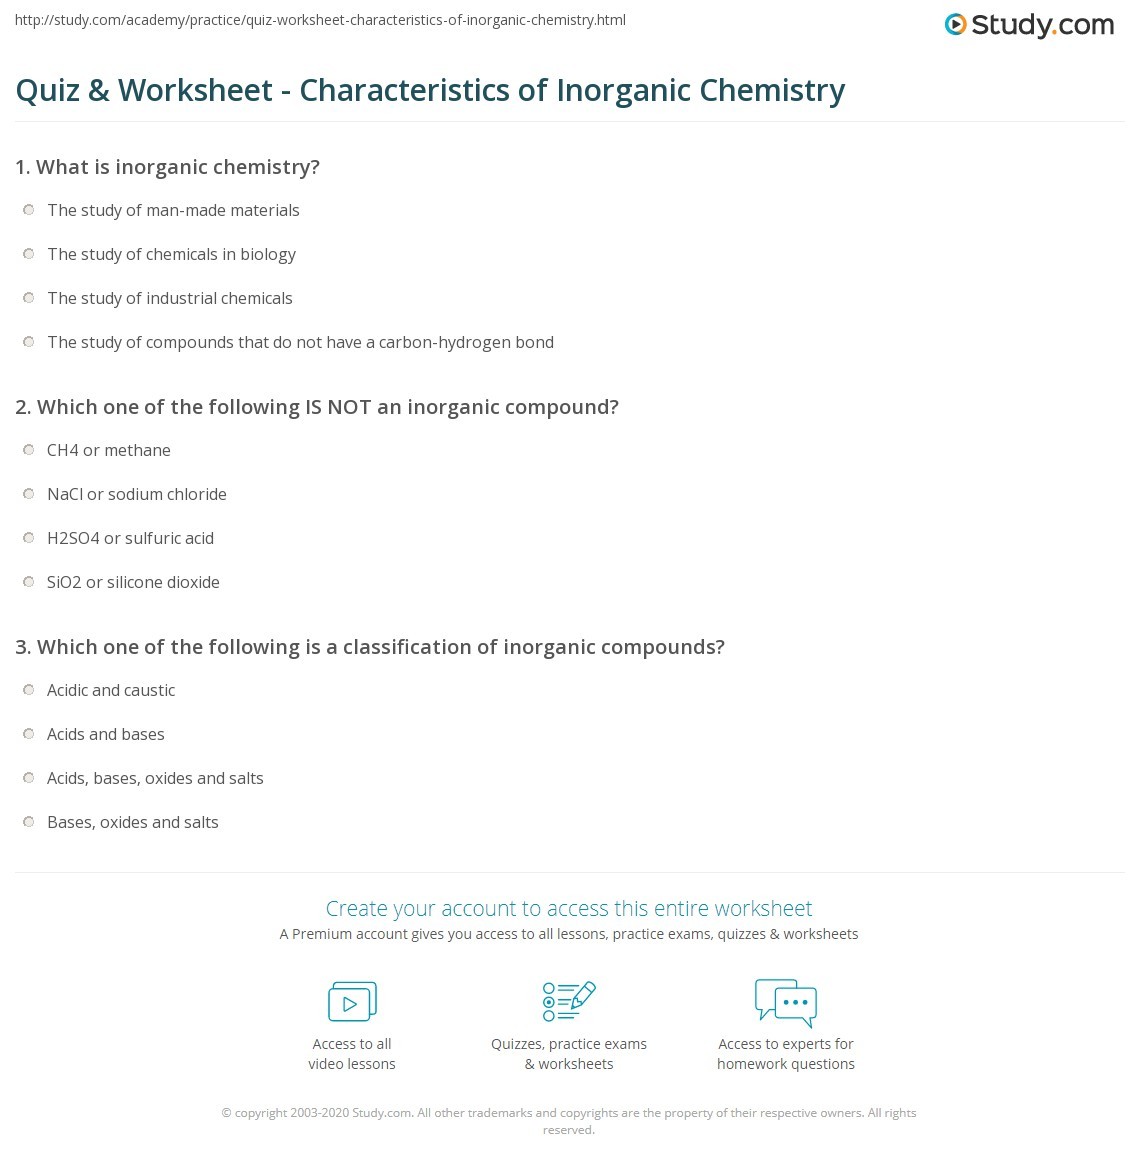 quiz worksheet characteristics of inorganic chemistry com print what is inorganic chemistry definition impact factor examples worksheet